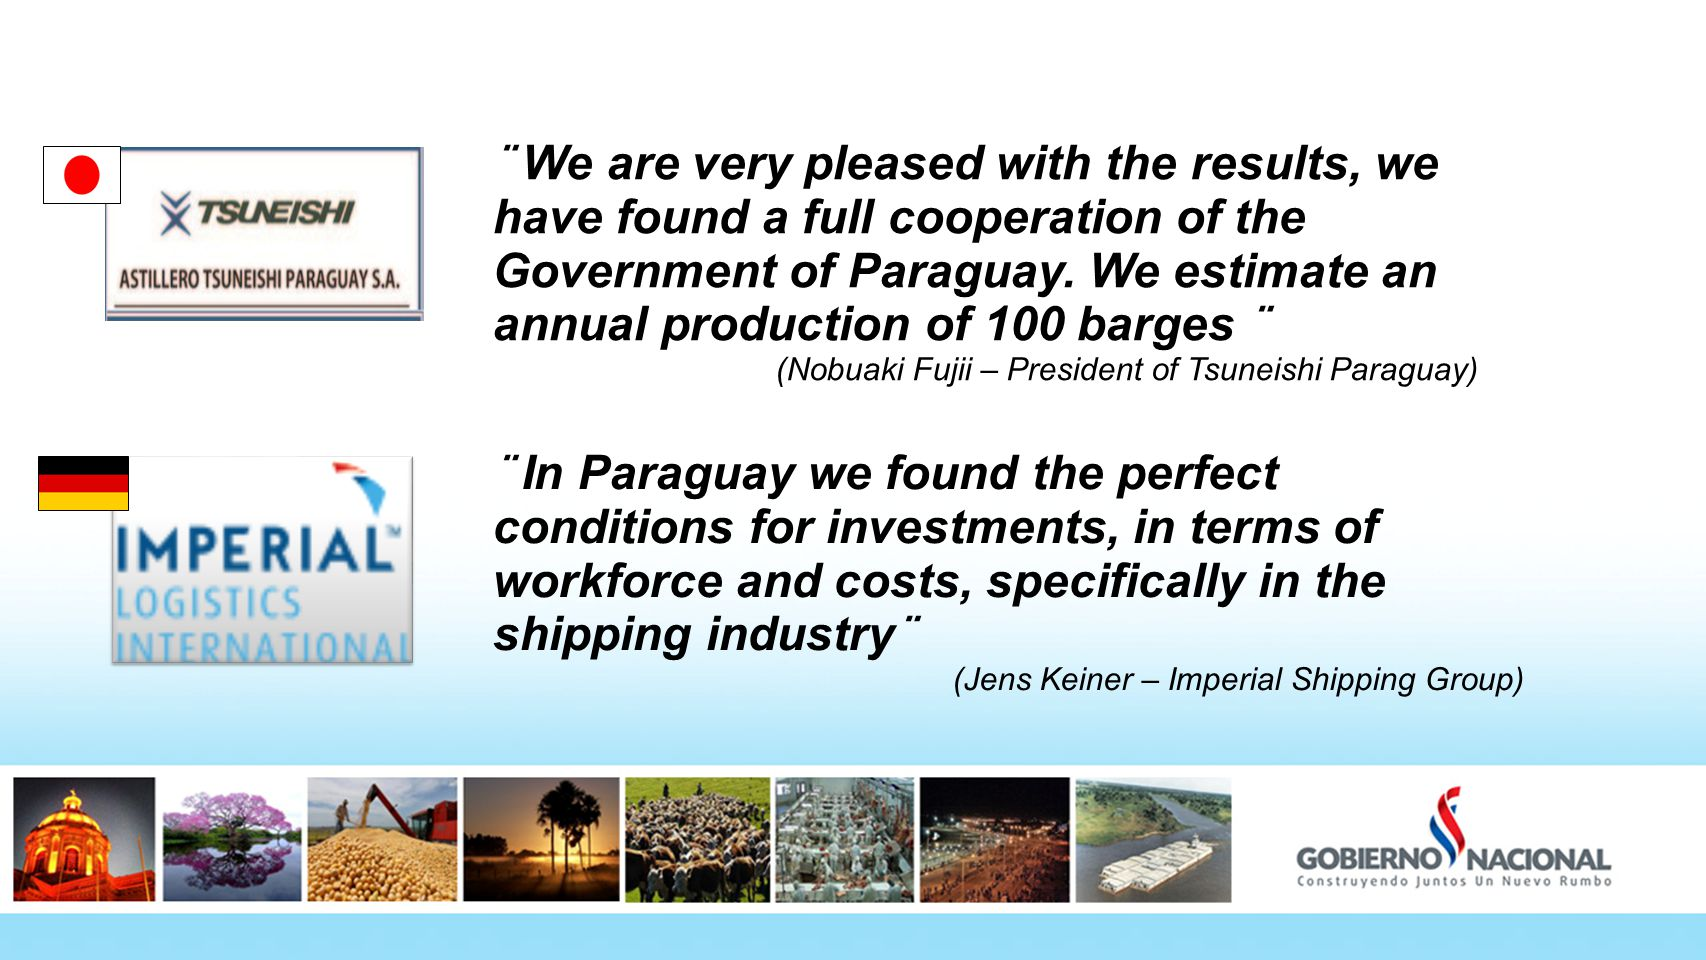 ¨ We are very pleased with the results, we have found a full cooperation of the Government of Paraguay.